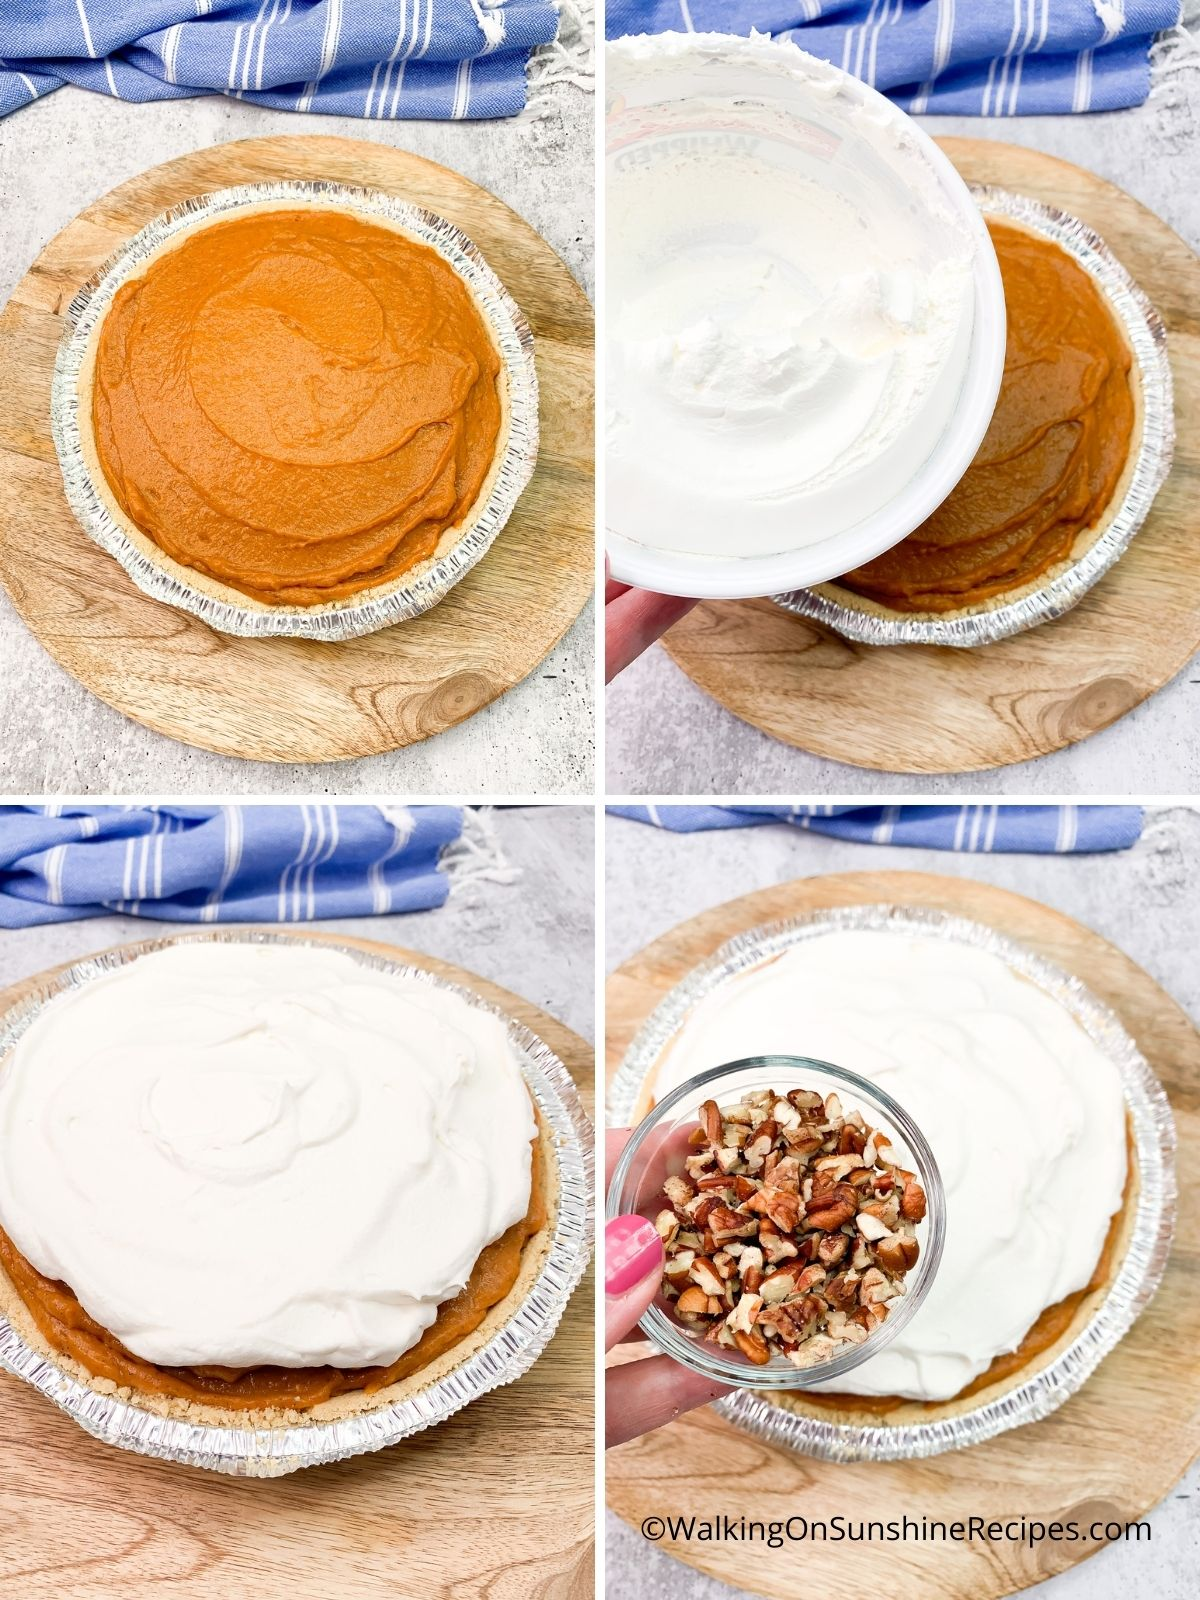 Add Cool Whip topping to the top of pumpkin mixture.